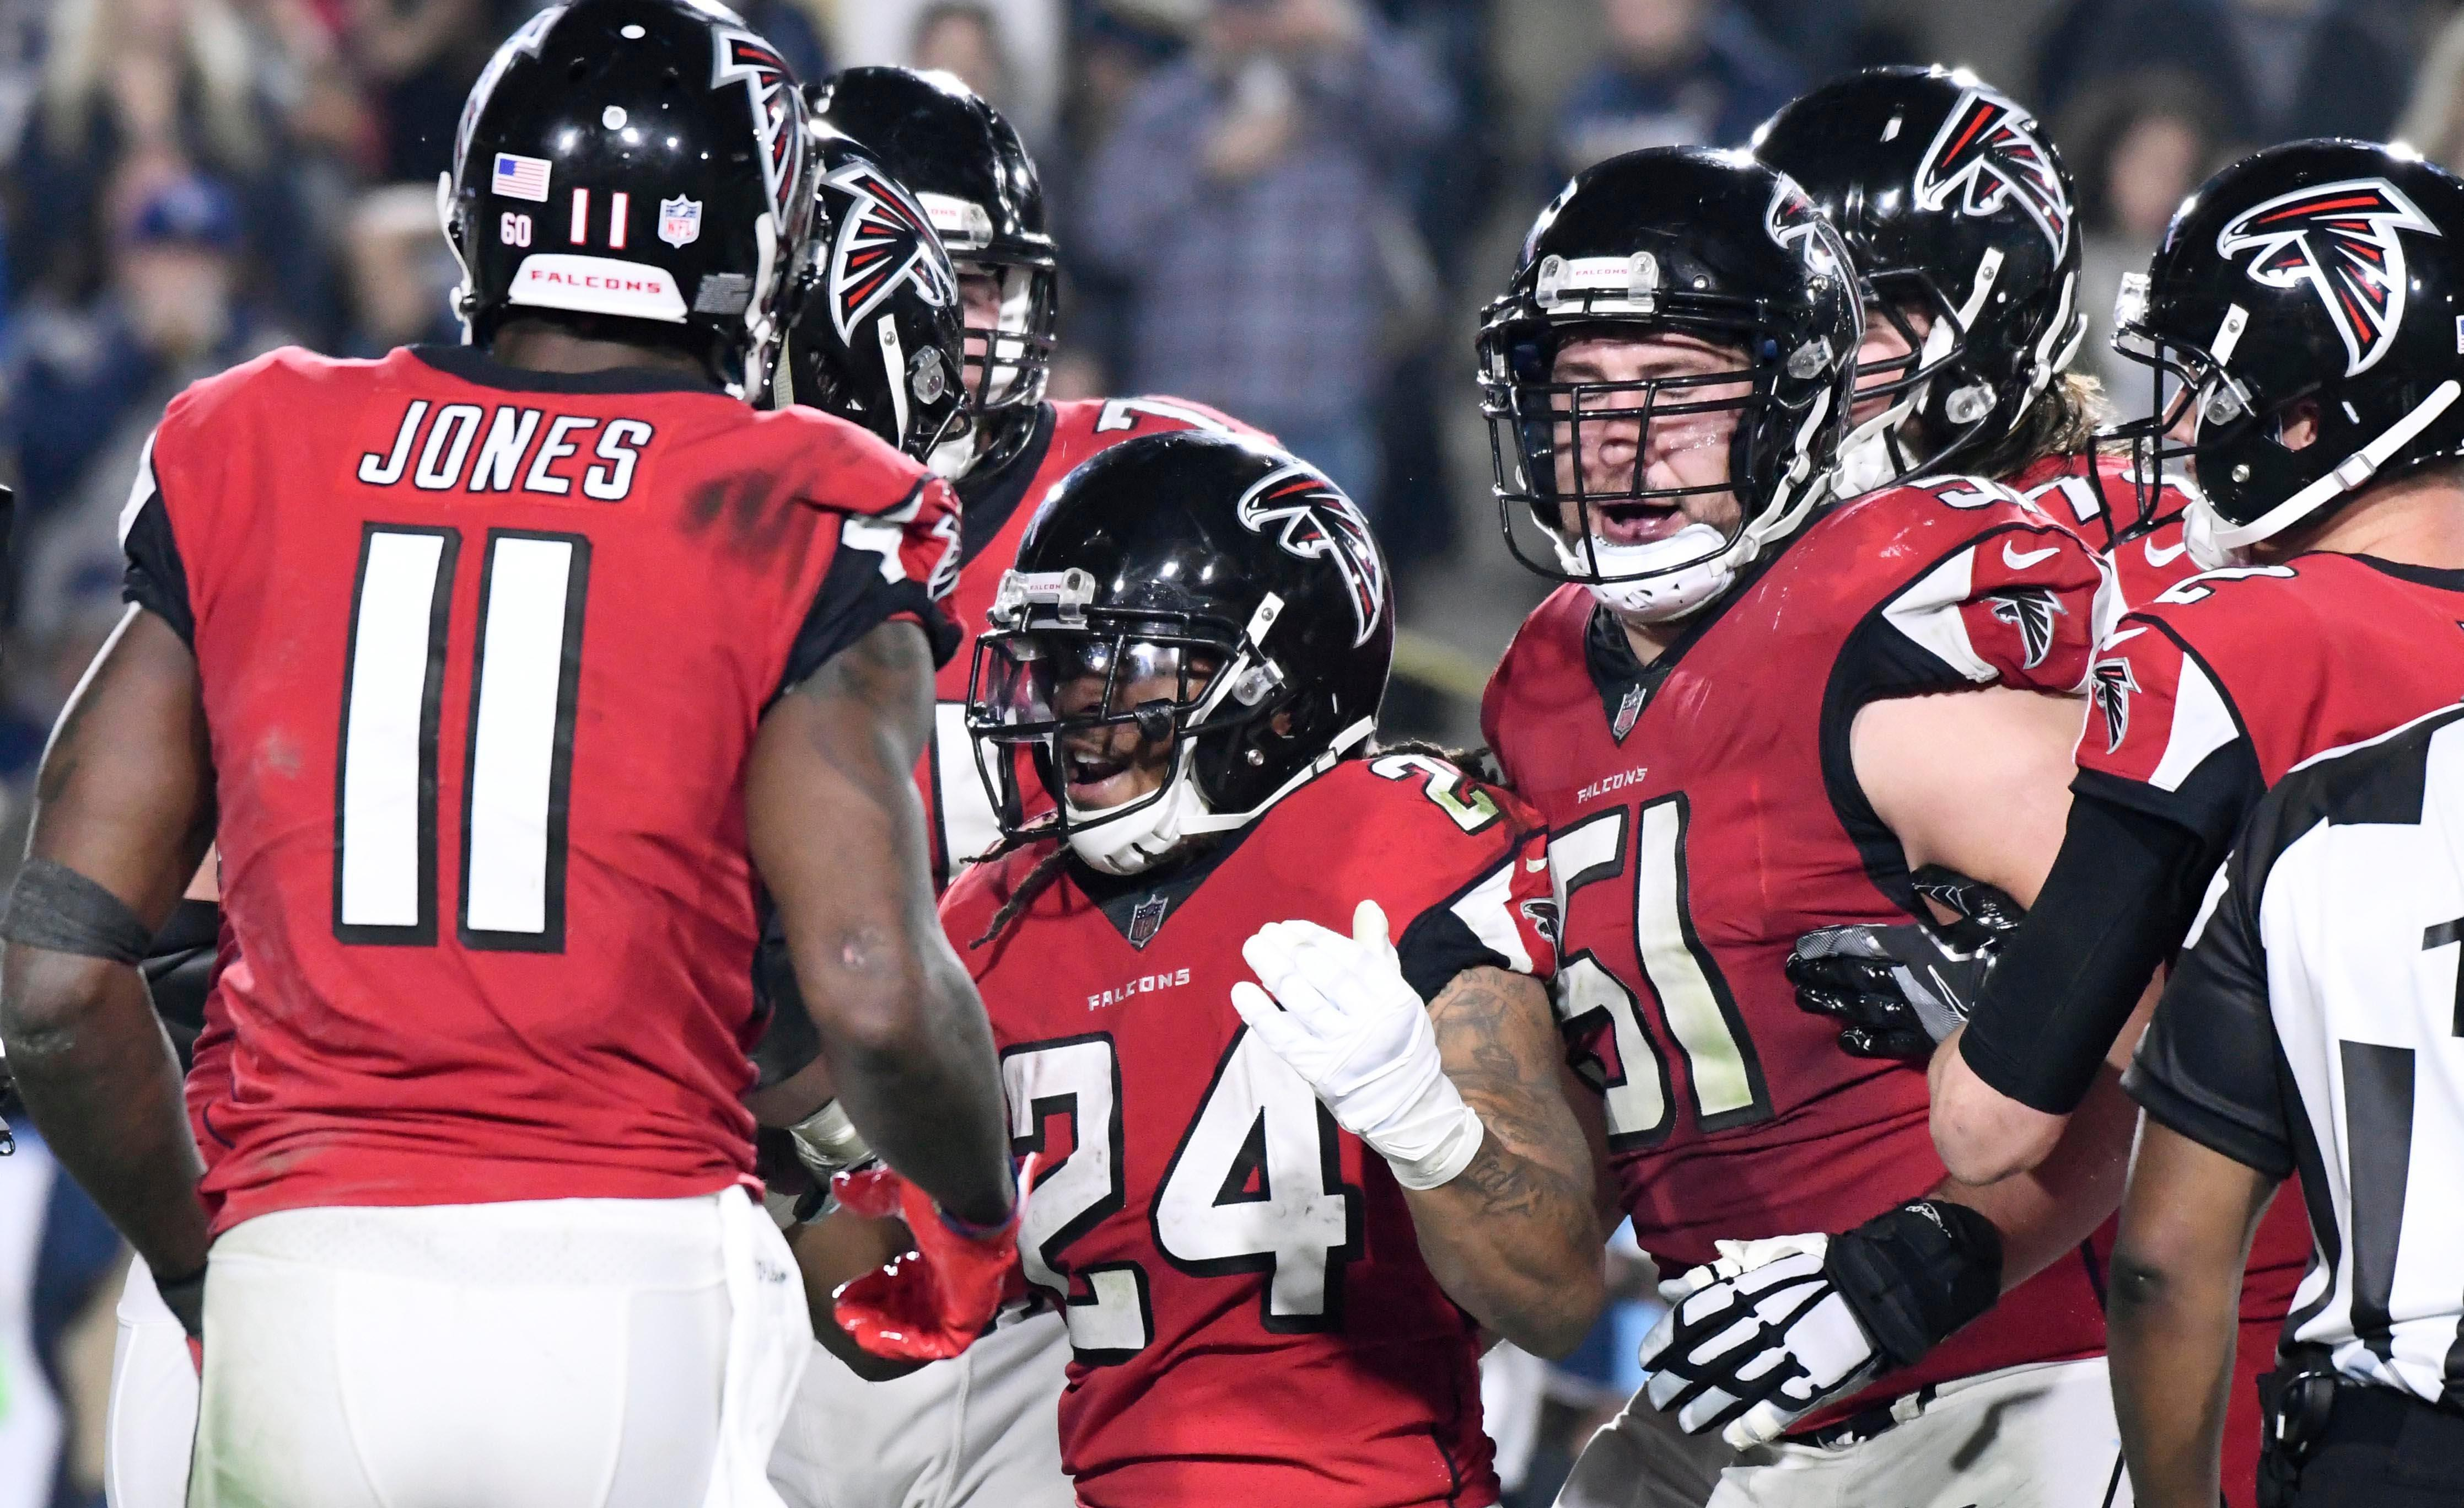 Atlanta Falcons vs Philadelphia Eagles: No 1 seeds head into play-off clash as outsiders against red-hot Falcons